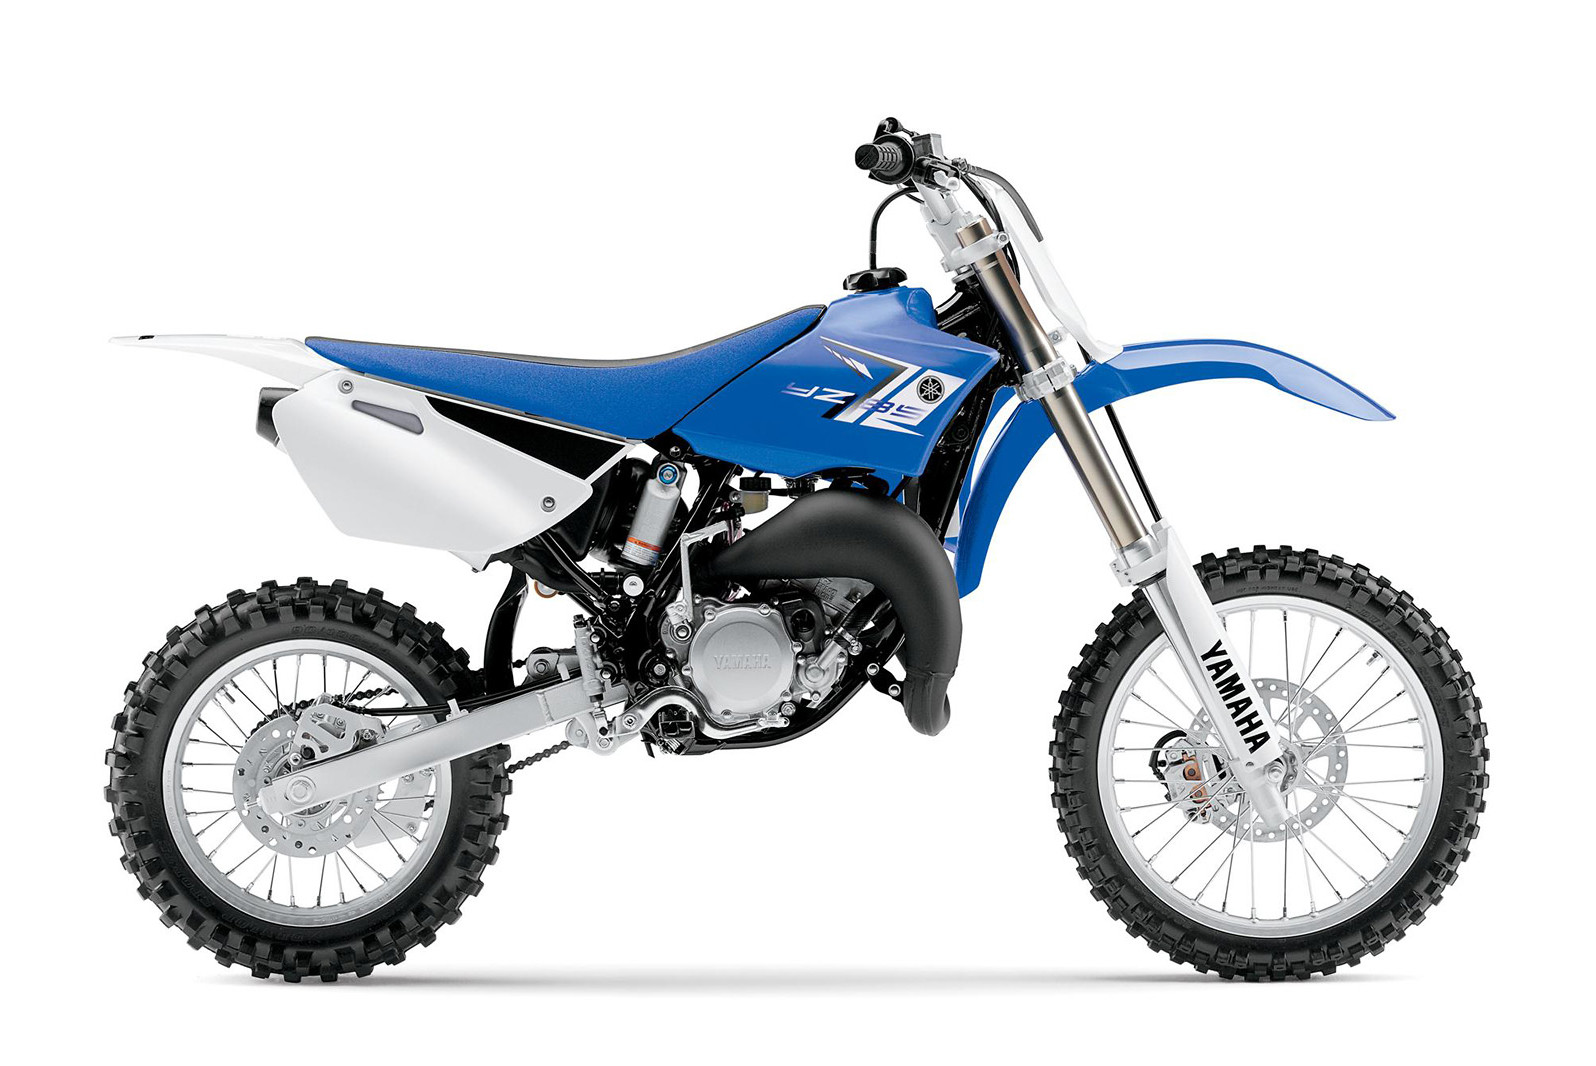 2013 Yamaha YZ85 - Reviews, Comparisons, Specs - Motocross / Dirt Bike Bikes - Vital MX